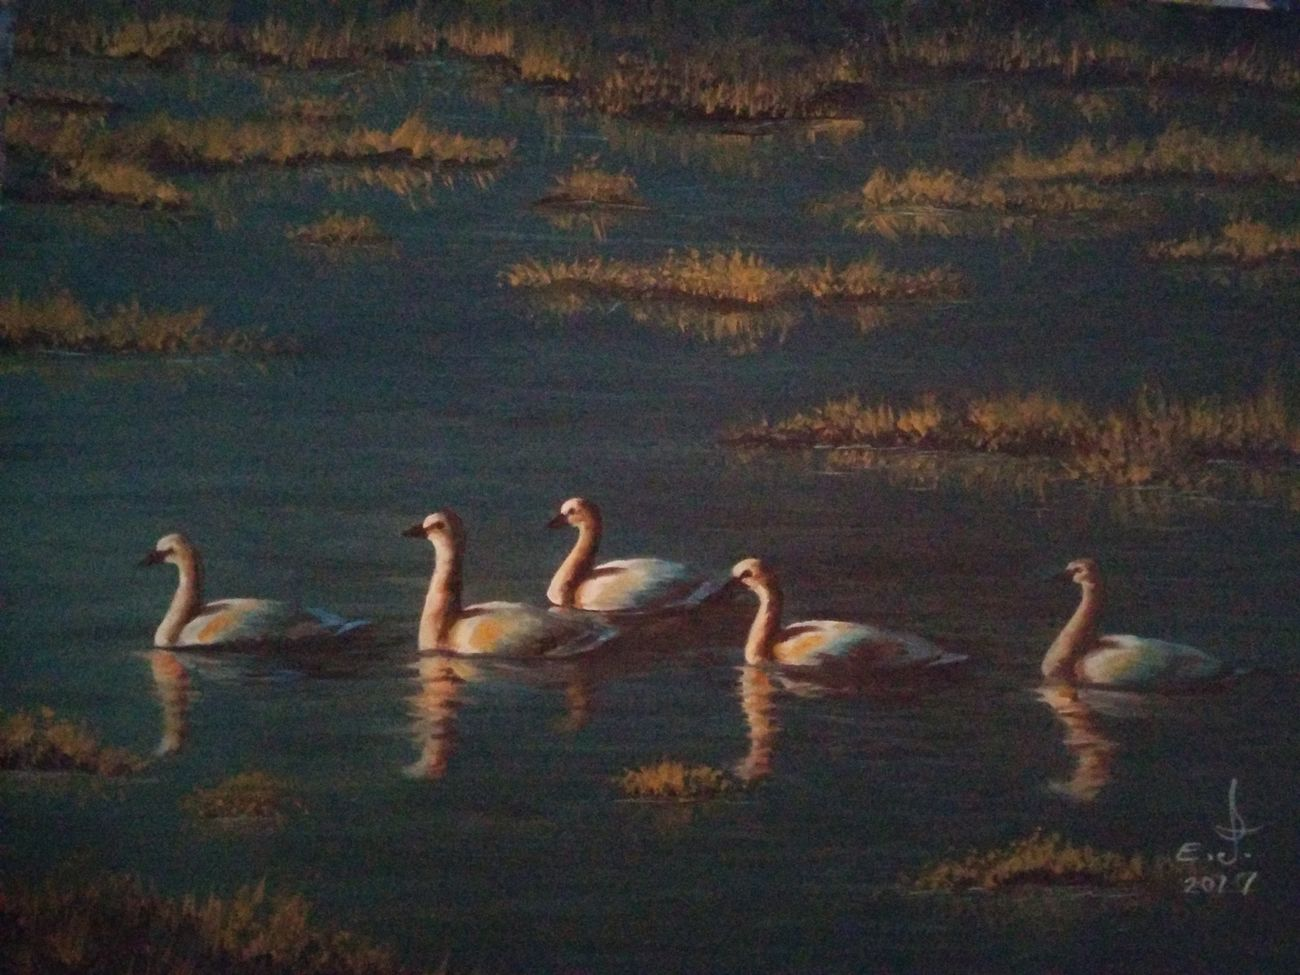 "Tundra Swans ,another magnificent precious treasure and one of the most beautiful birds ever and a true beauty ,enjoy , respect and treasure them.oil on canvas 14""_20"". Animals In The Wild Bird Animal Themes Wildlife & Nature Swan My Art Collection Fine Art Original Art ArtWork Tranquillity Oil Painting Fredom Beauty Nature My Animal Collection Blue Water Blue Sky Scenics Beauty In Nature Drawing Love♥ My Best Friends ❤ Art, Drawing, Creativity Art with my great friends"